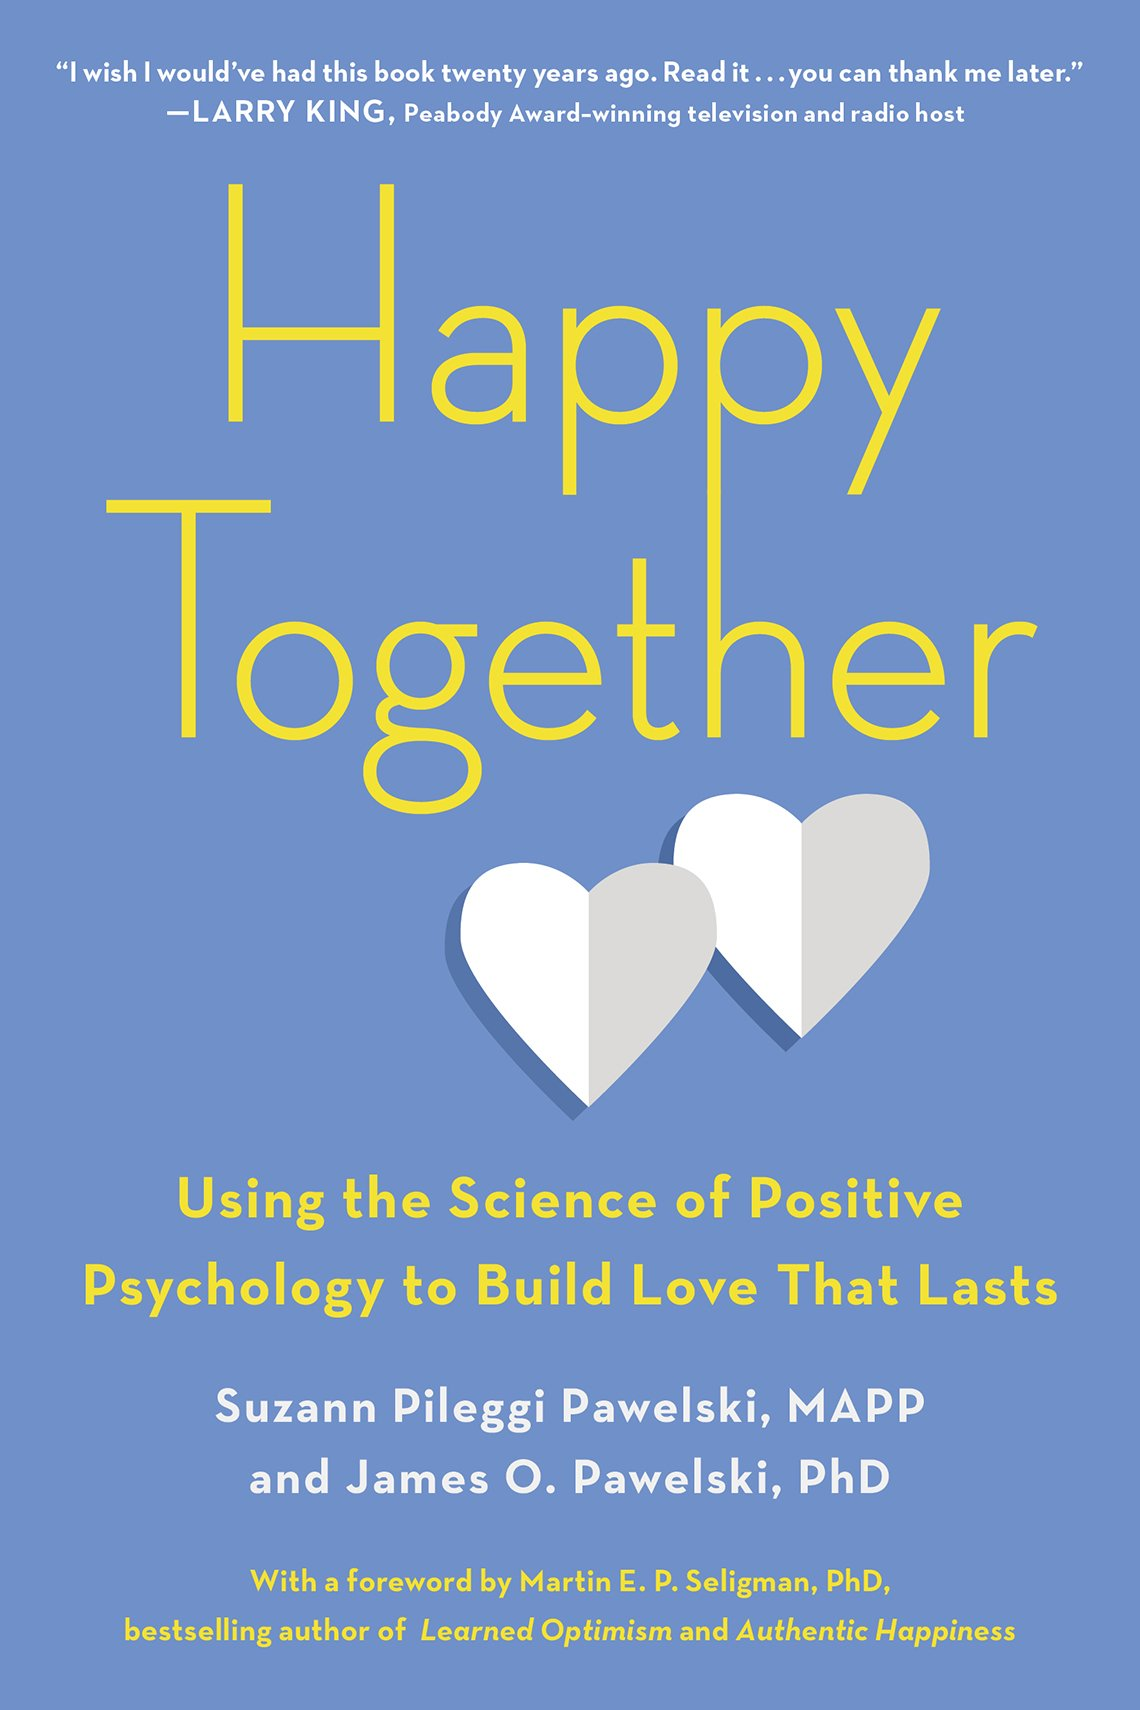 Happy Together by Suzaan Pileggi Pawelski. Blue book cover with two folded paper hearts